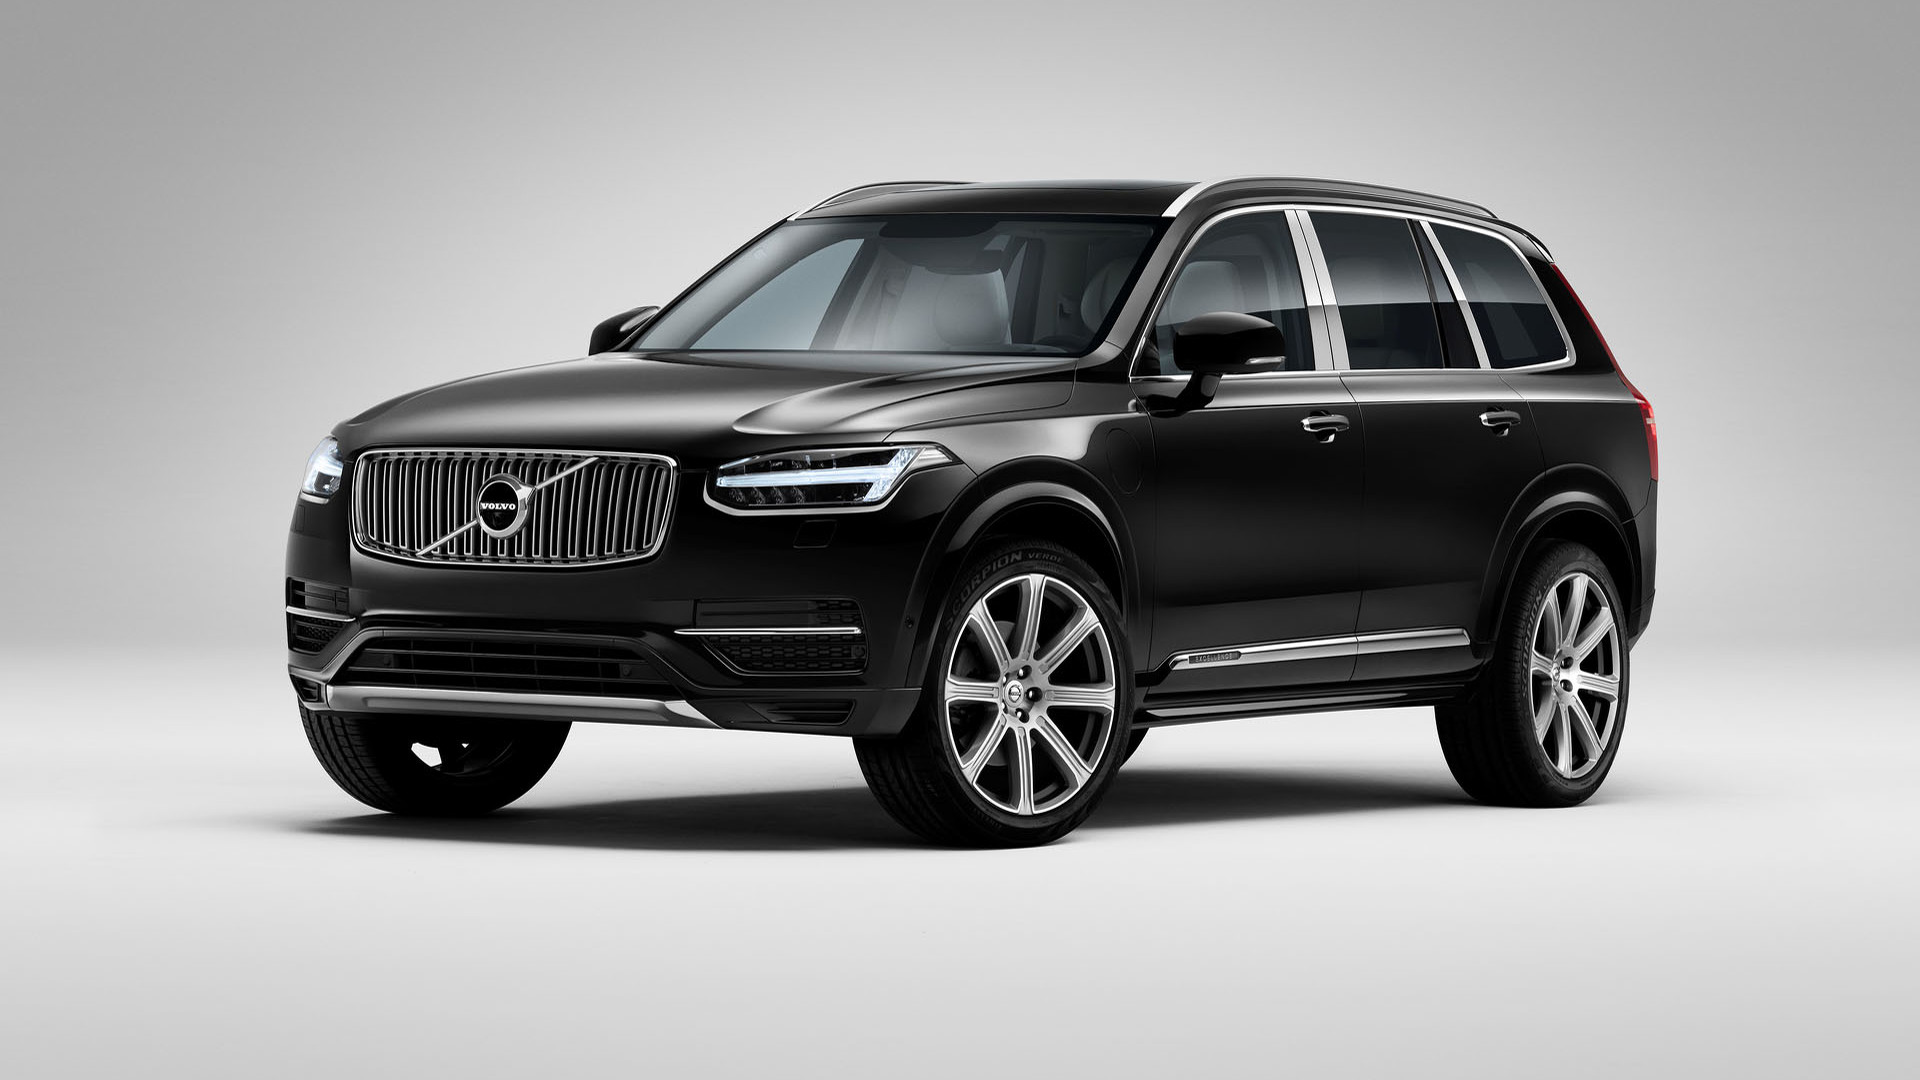 intl volvo suv prices specs overview bbcqygv price international